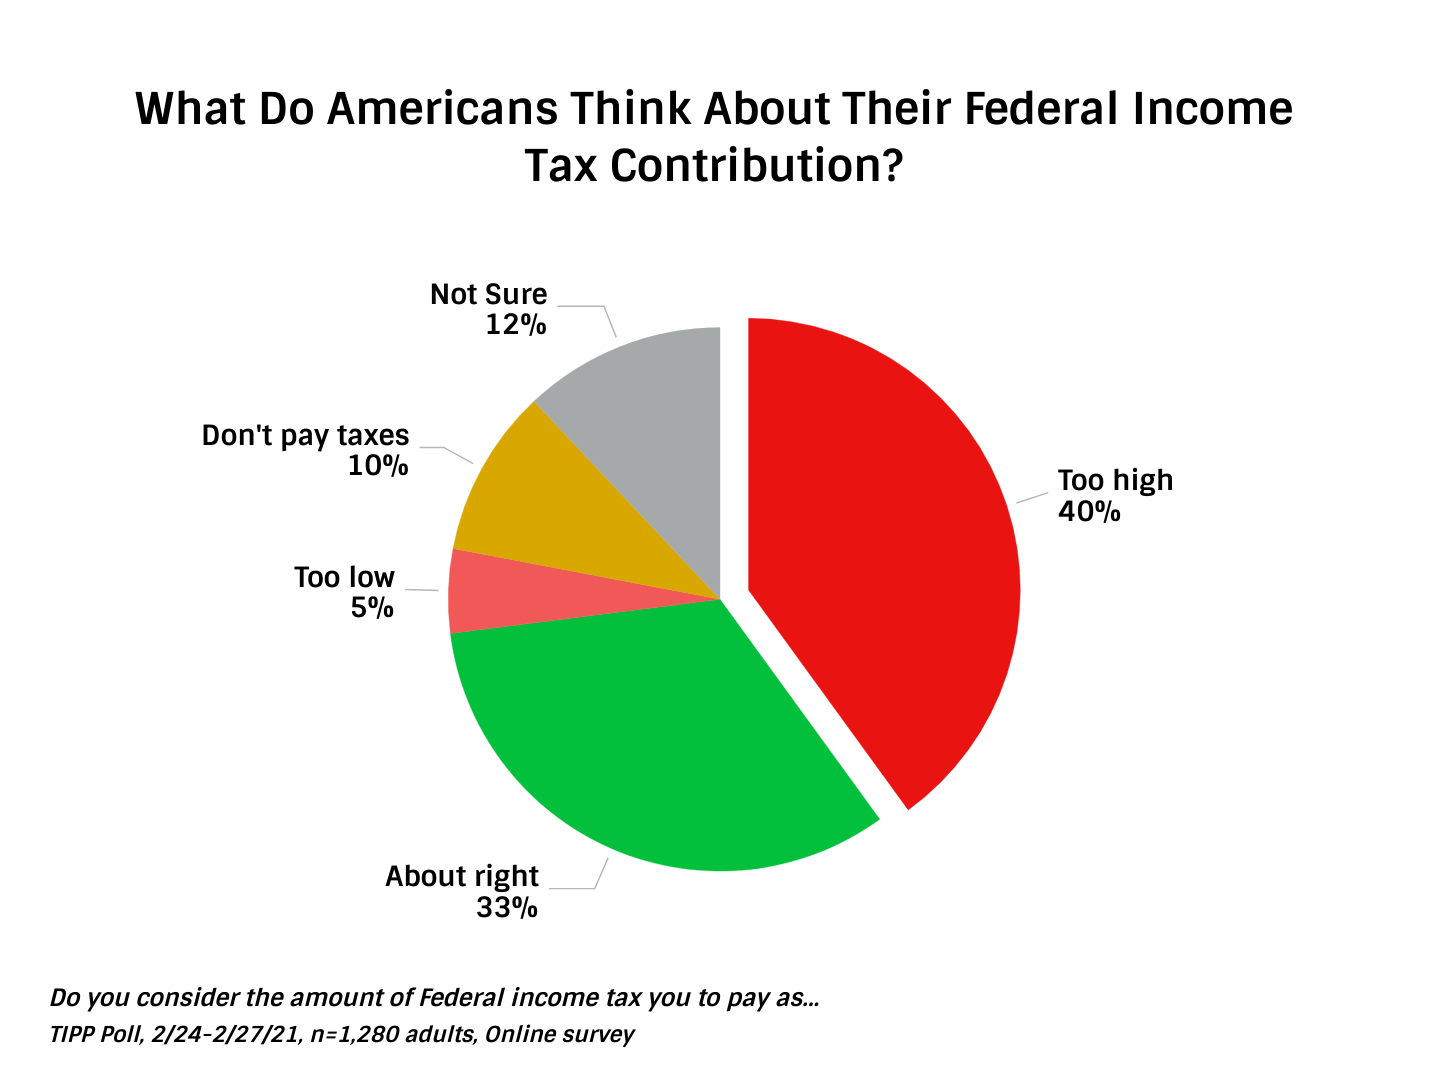 Federal Income Tax Contribution - Chart